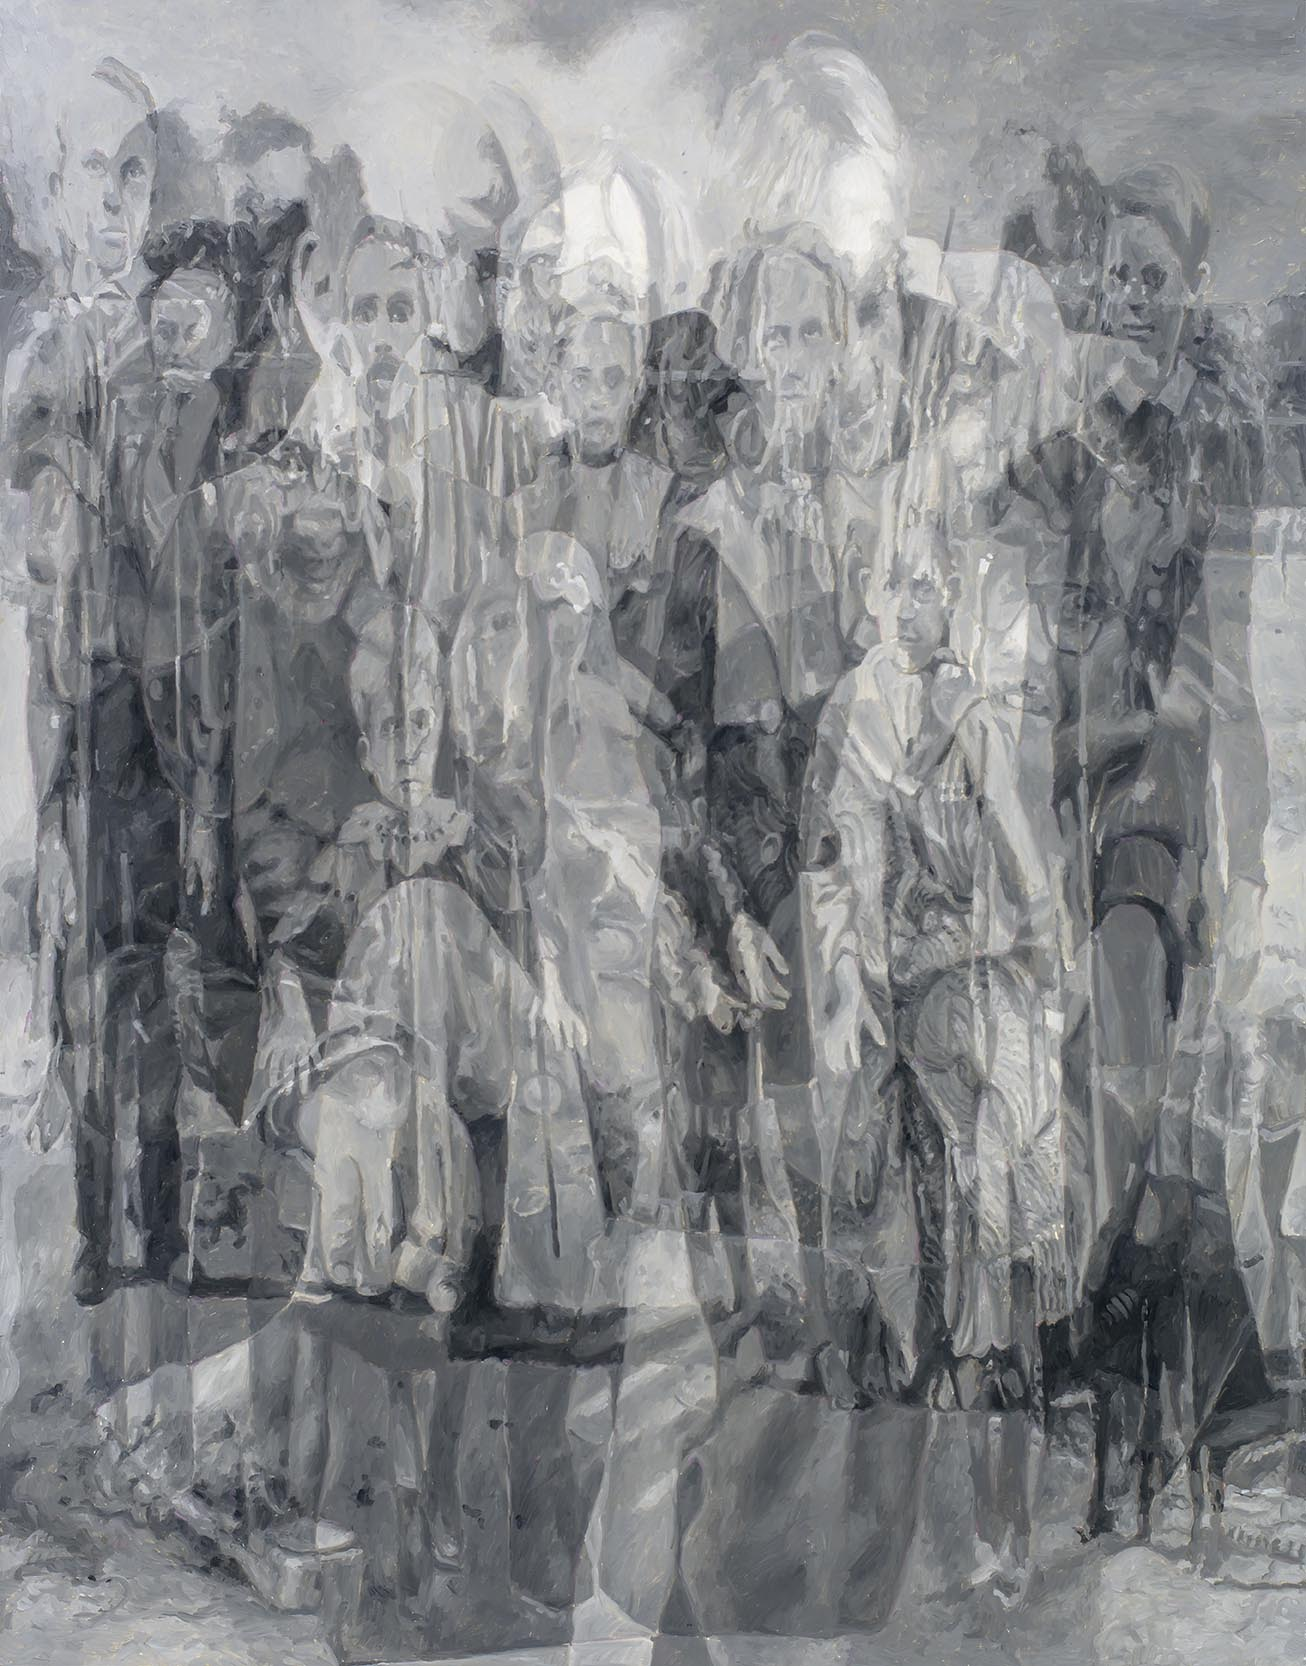 Copy of Intergenerational (Fraga/Fragar), oil on board, 90 x 70cm, 2016. (Private collection)